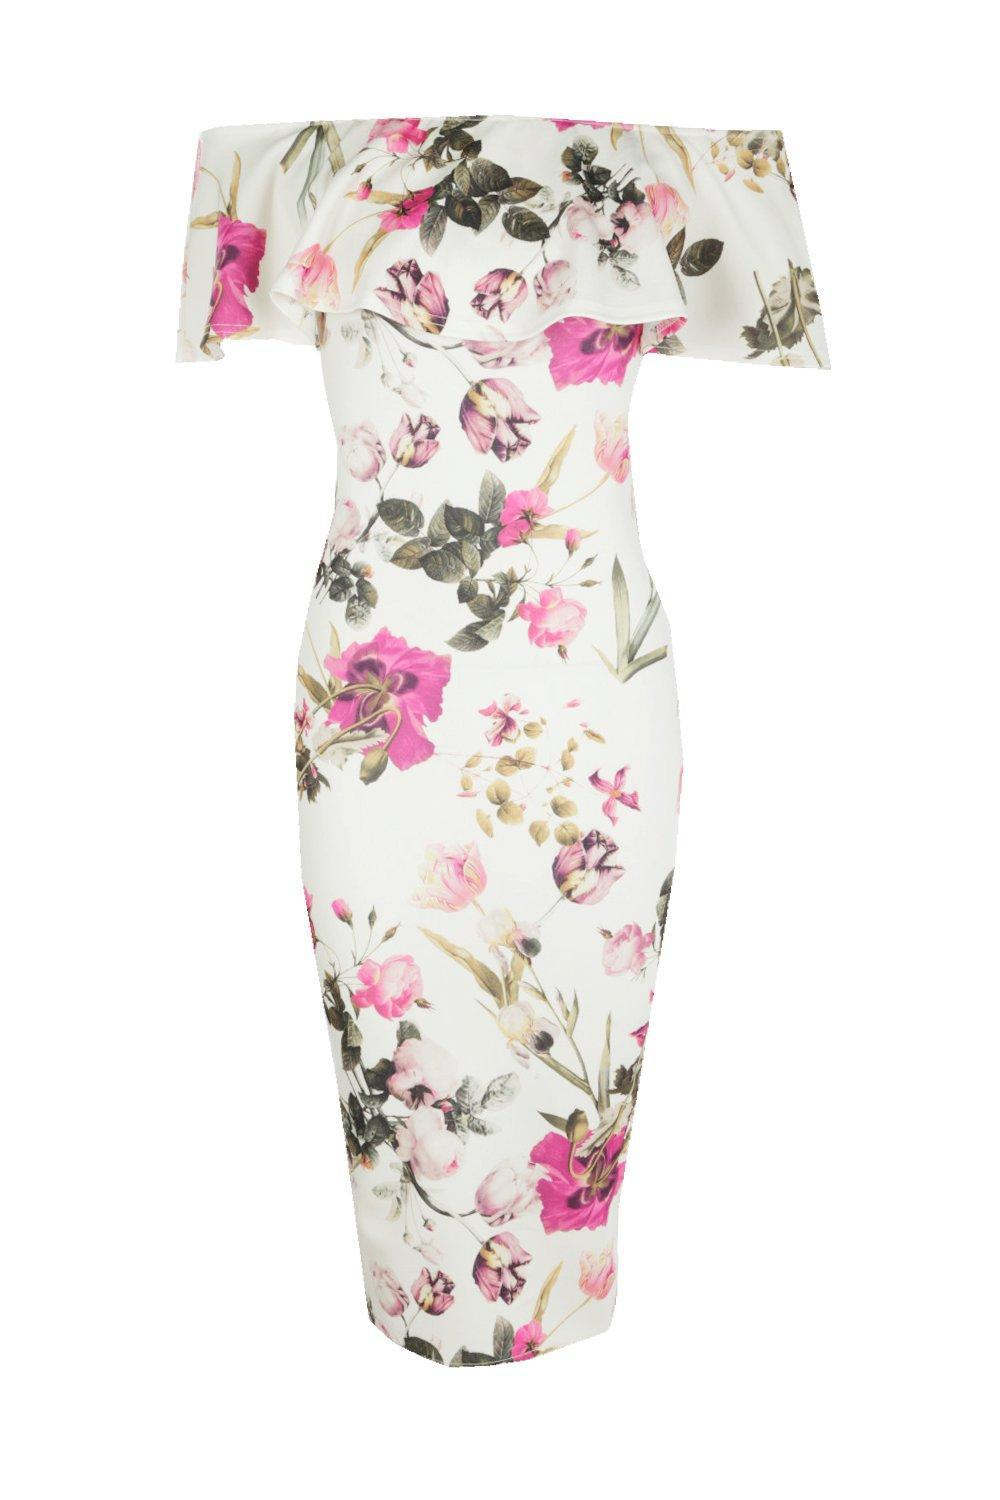 ef3706deb3eb Boohoo Lucy Floral Double Frill Off The Shoulder Midi Dress - Lyst